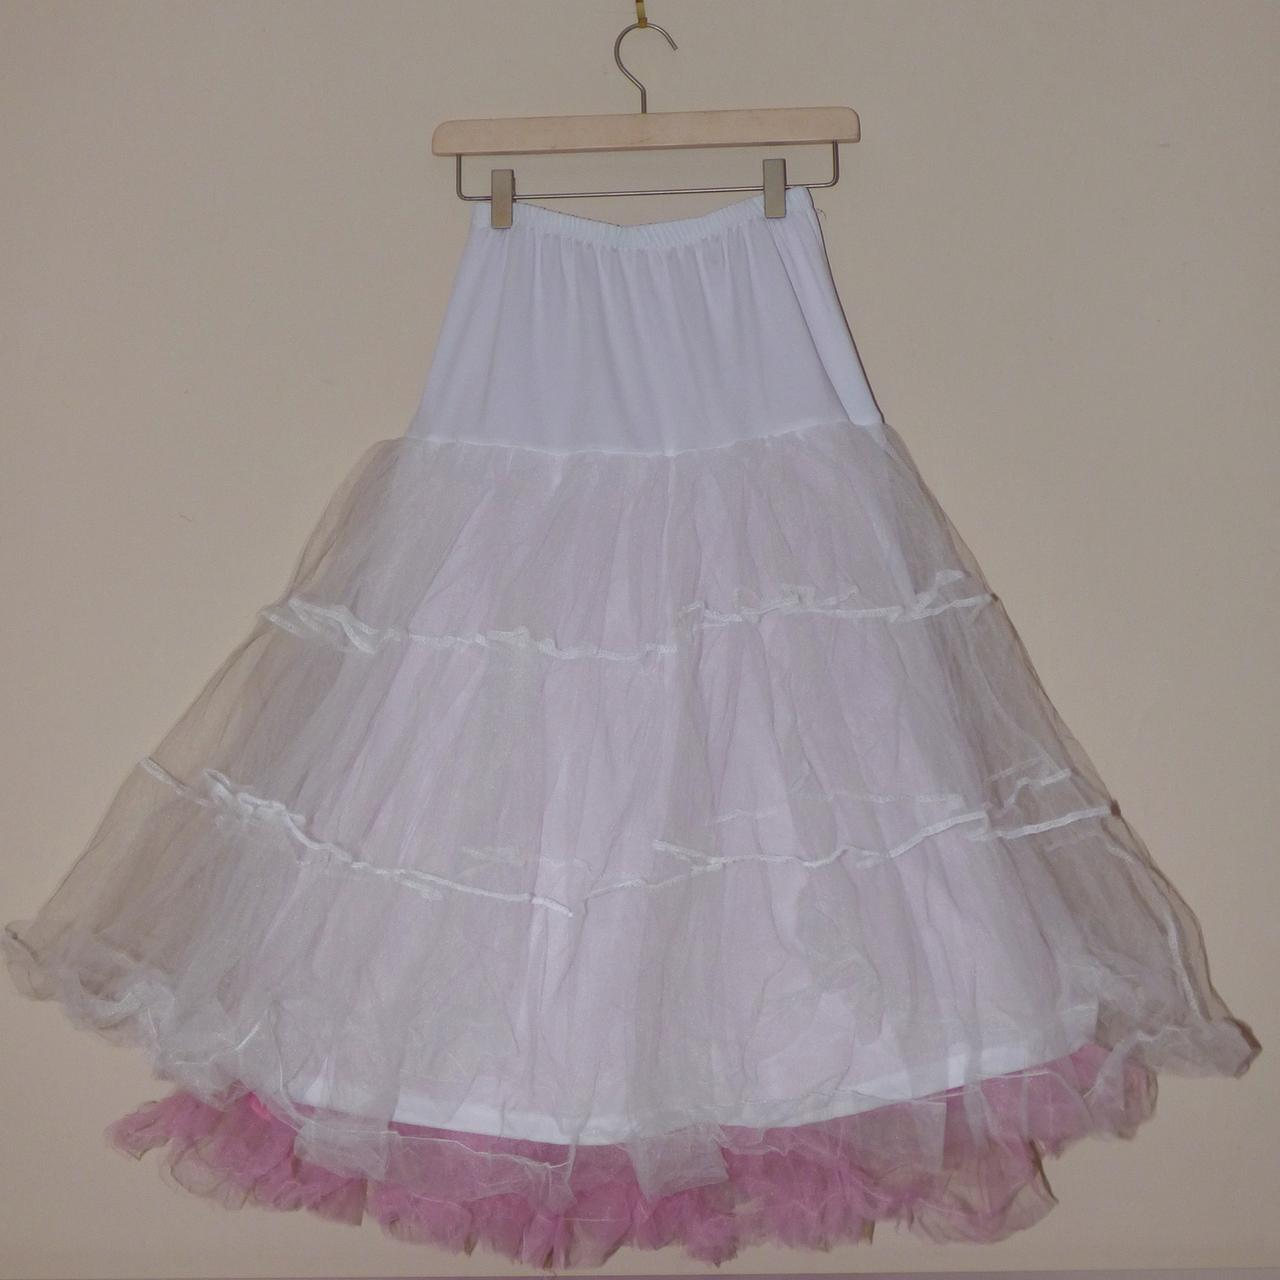 petticoats_both (1)